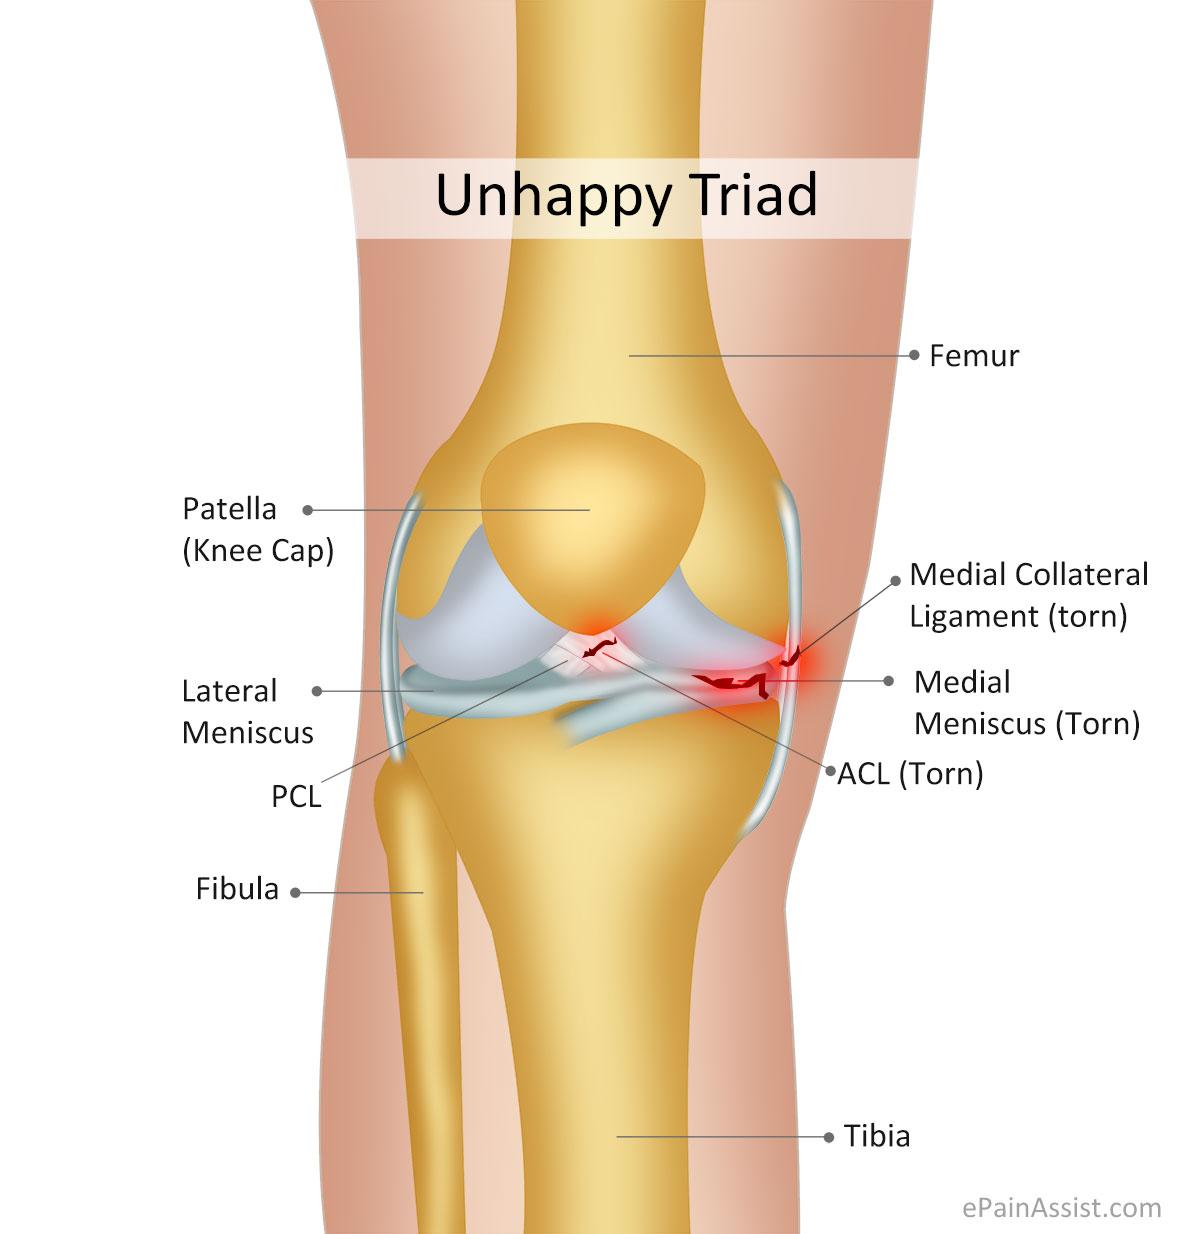 Unhappy Triad Or Blown Knee Or Terrible Triad